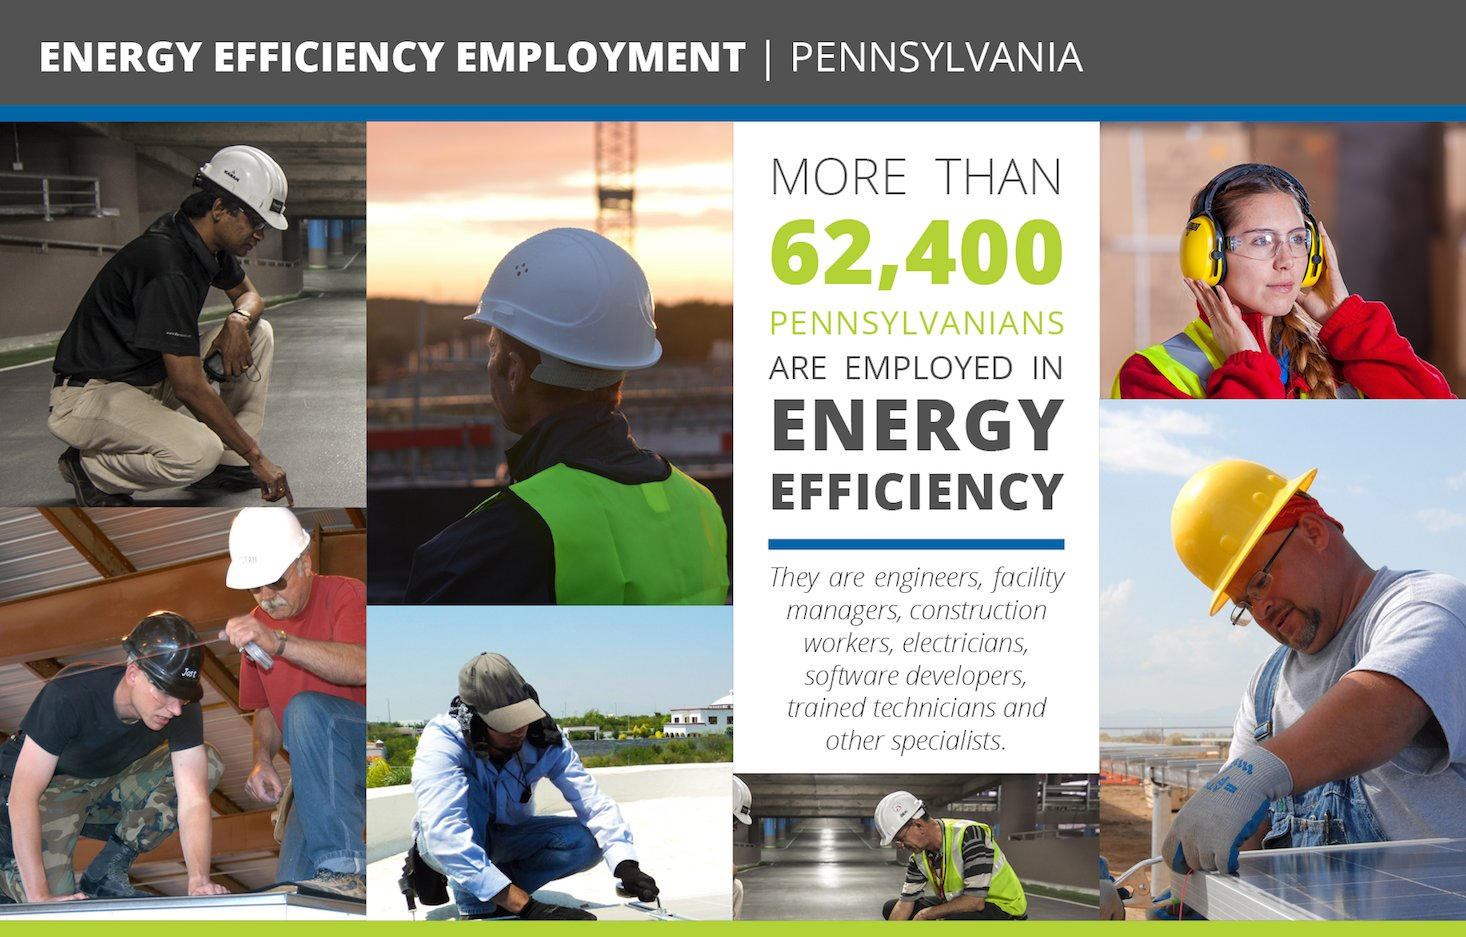 Pennsylvania's #energyefficiency program – #Act 129 – saves customers money & supports 62K+ good, family-wage jobs that can't be outsourced. https://t.co/9Y0lVY0j4D